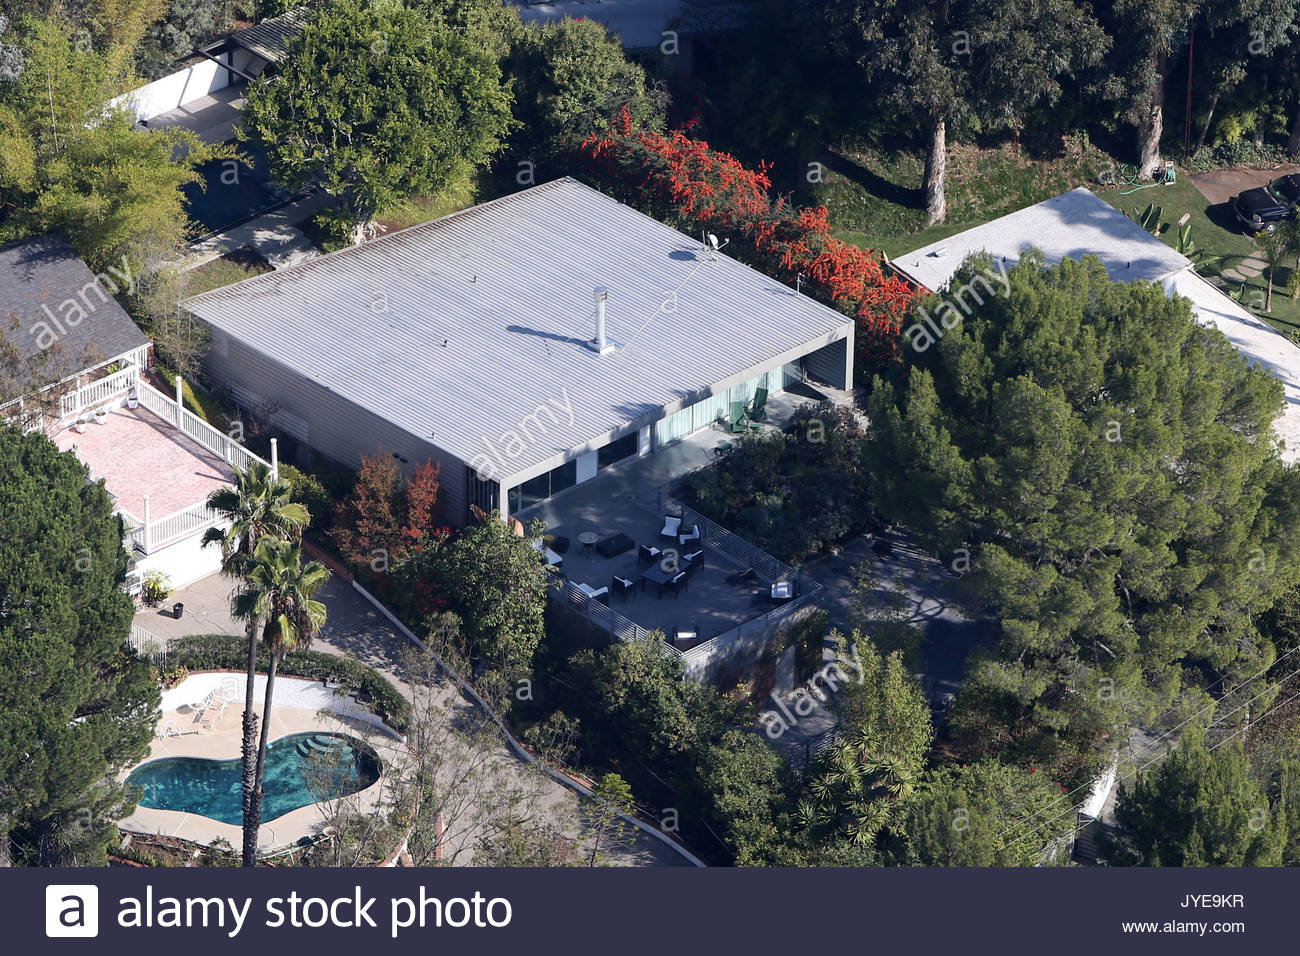 zac efron aerial views of zac efron 39 s home in the. Black Bedroom Furniture Sets. Home Design Ideas